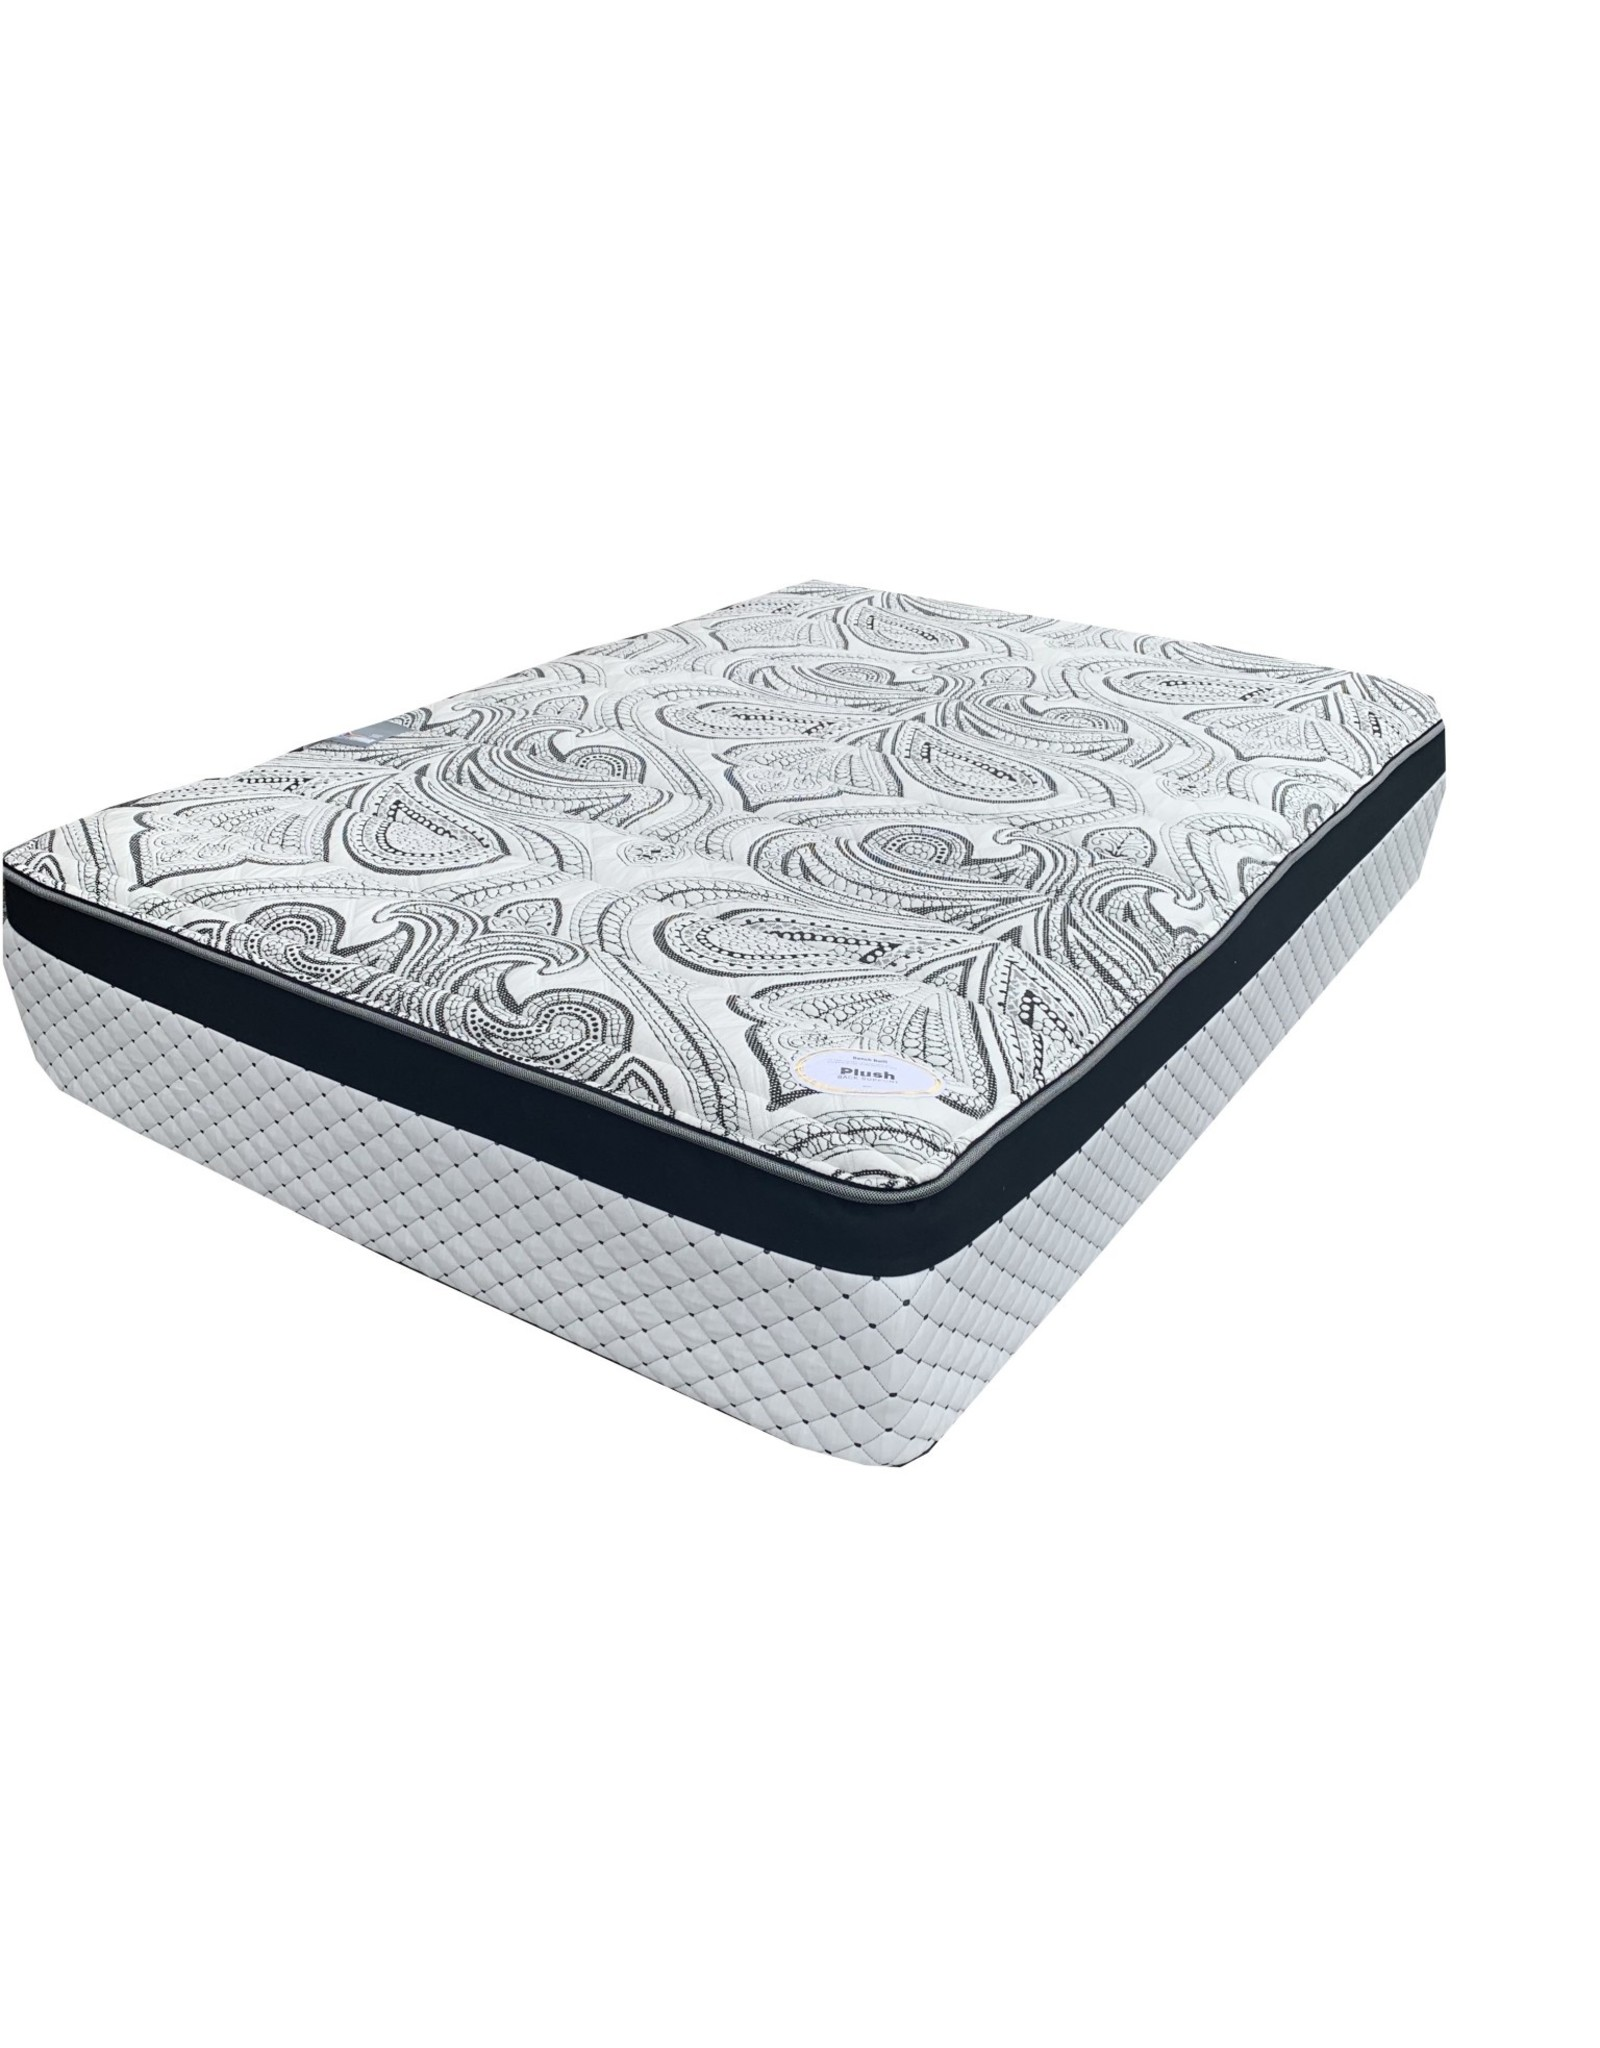 Diamond Plush RV Mattress